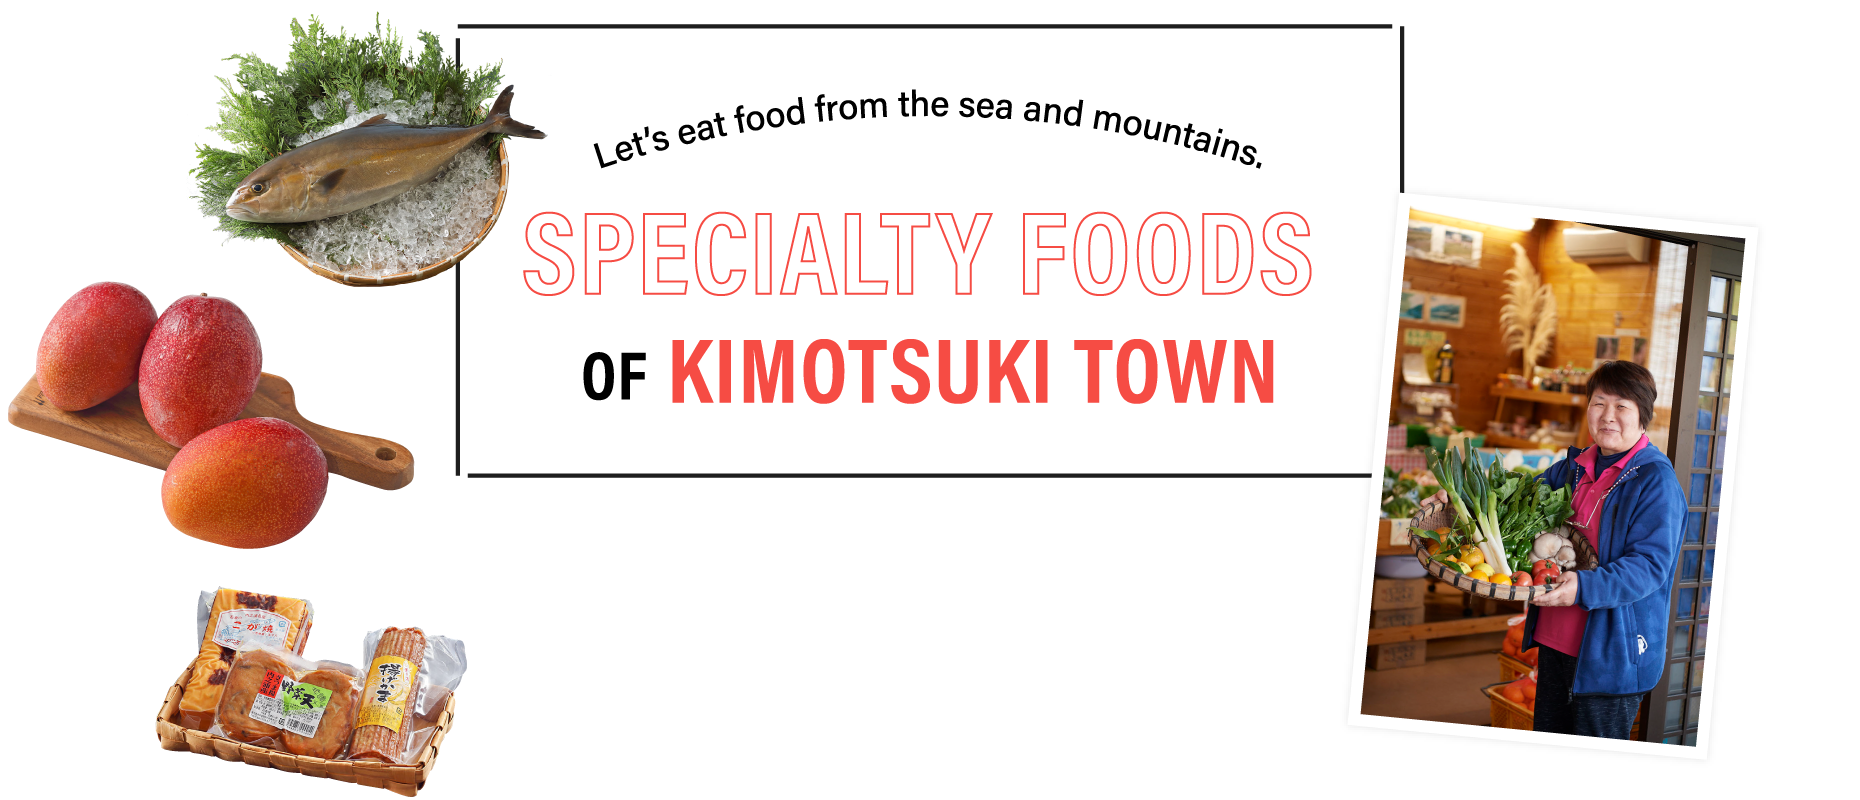 Let's eat food from the sea and mountains. SPECIALTY FOODS OF KIMOTSUKI TOWN